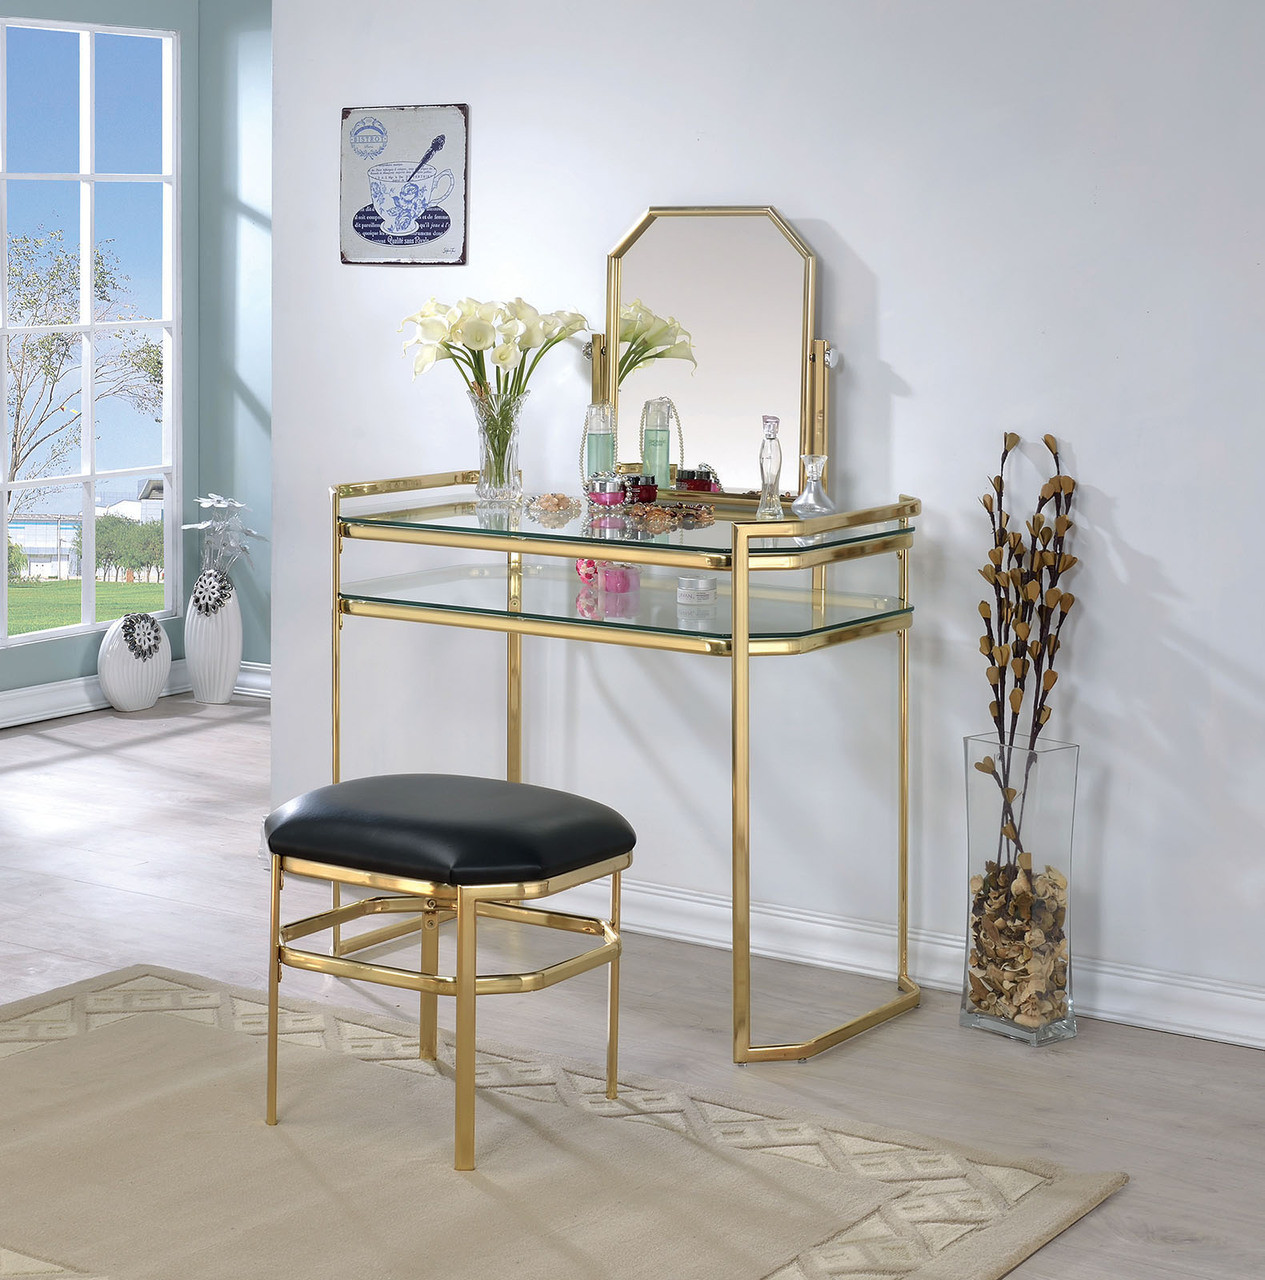 Metal Makeup Vanity Table Set Arabella Gold Metal Makeup Vanity Table Set With Mirror